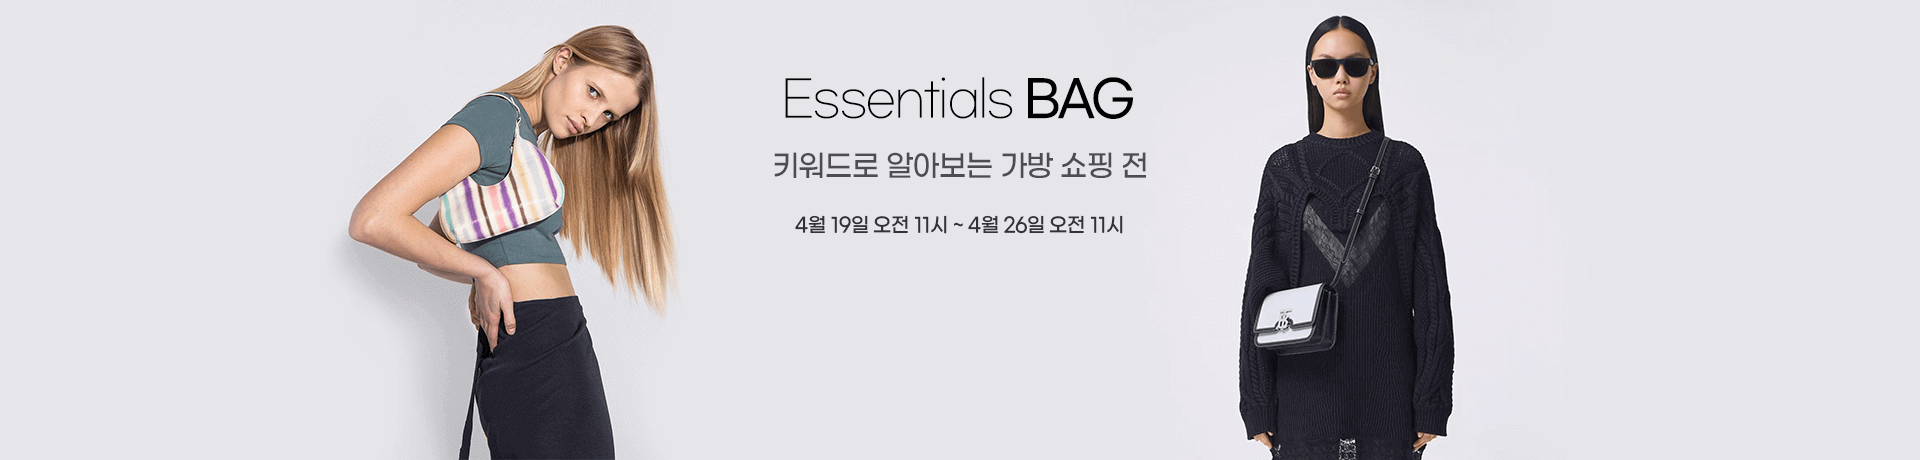 210419_sy_essentials-bag_pc_e6e5ea